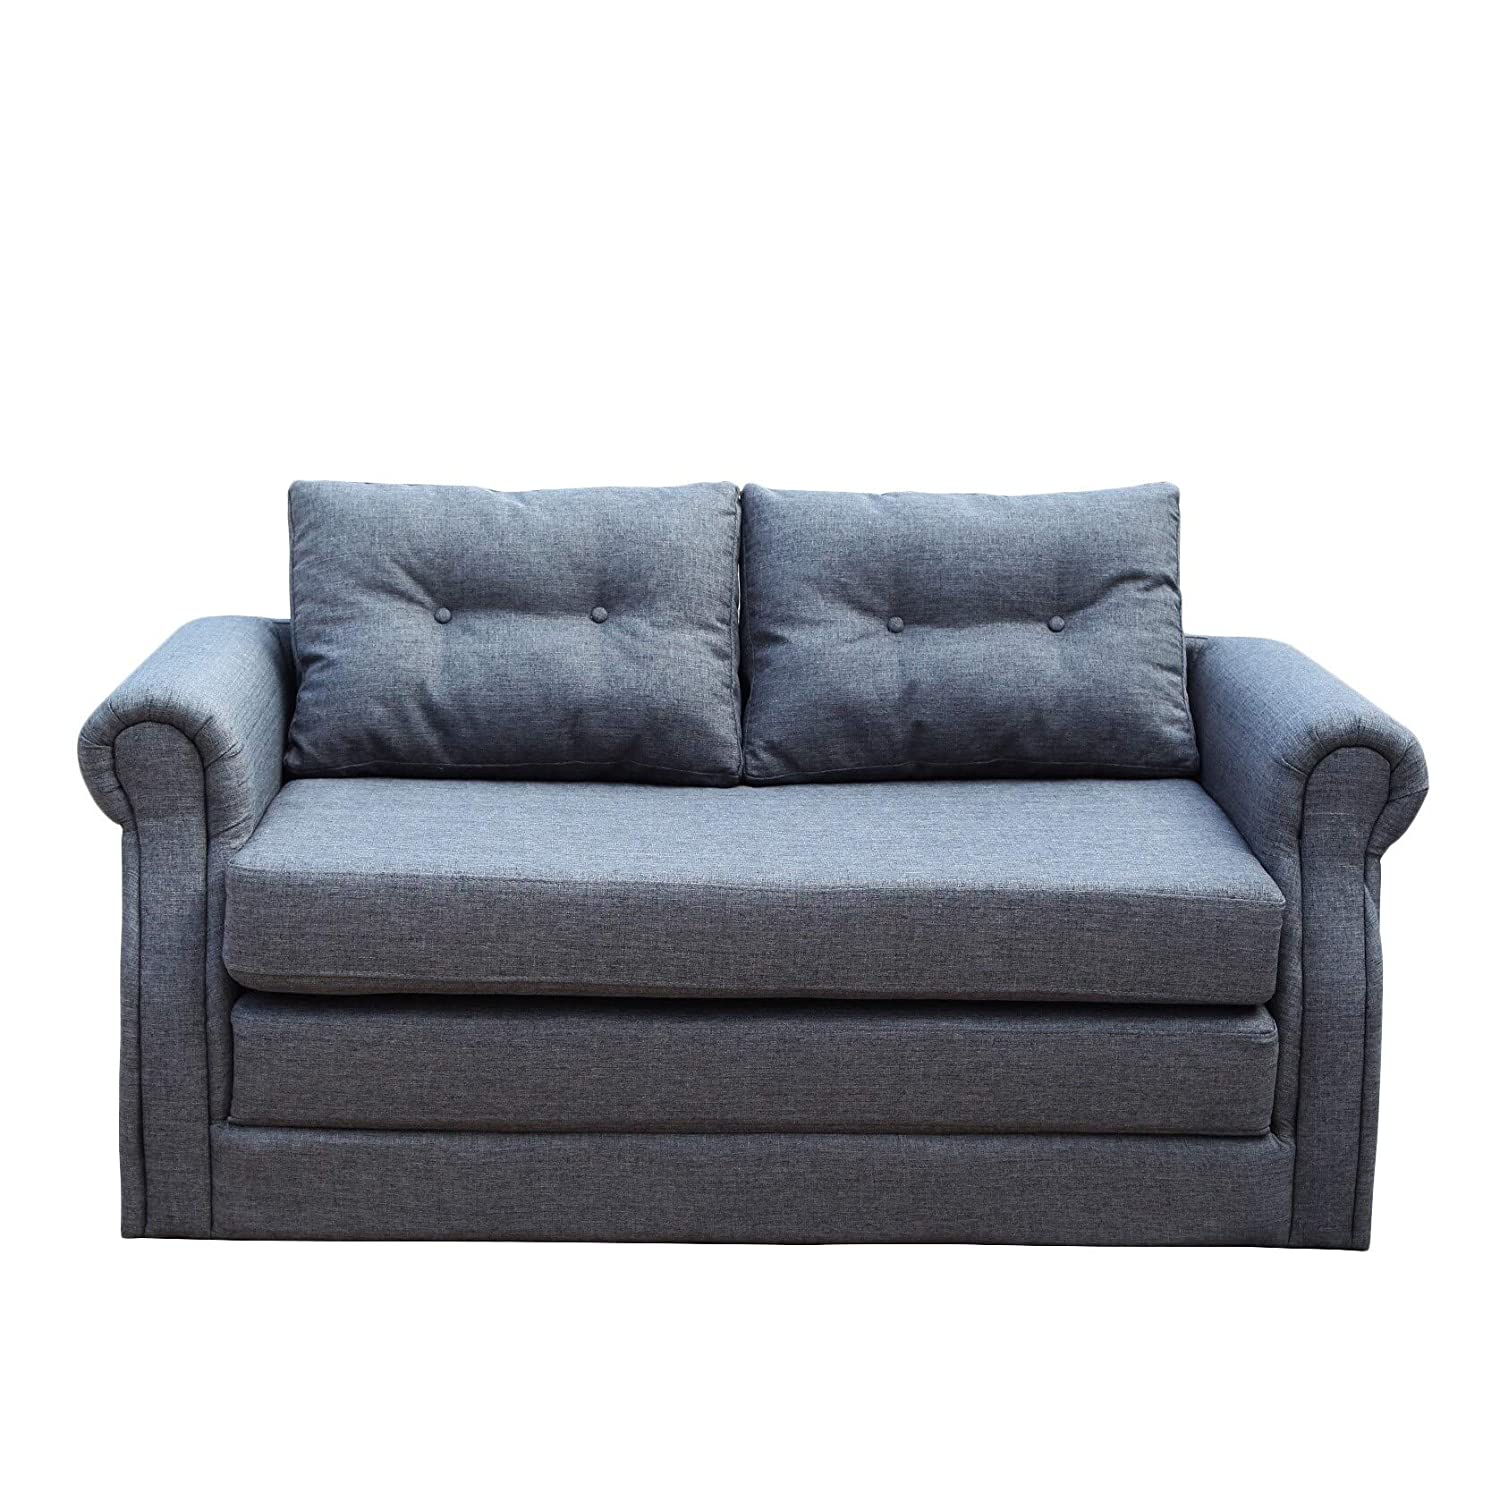 Amazon.com: NSIUSA Lucca Dark Grey Convertible Loveseat ...